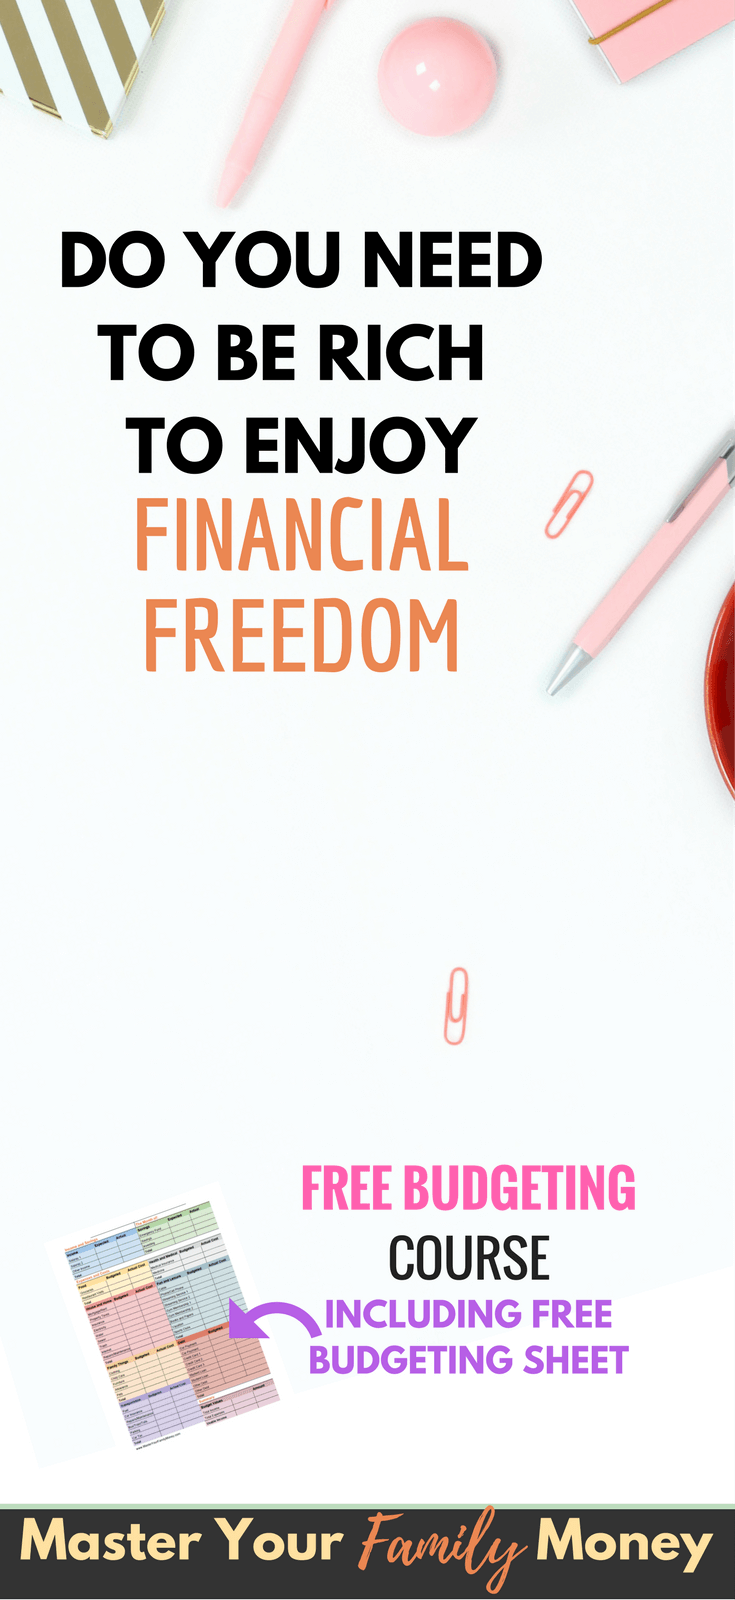 you don't need to be rich to enjoy financial freedom | money and